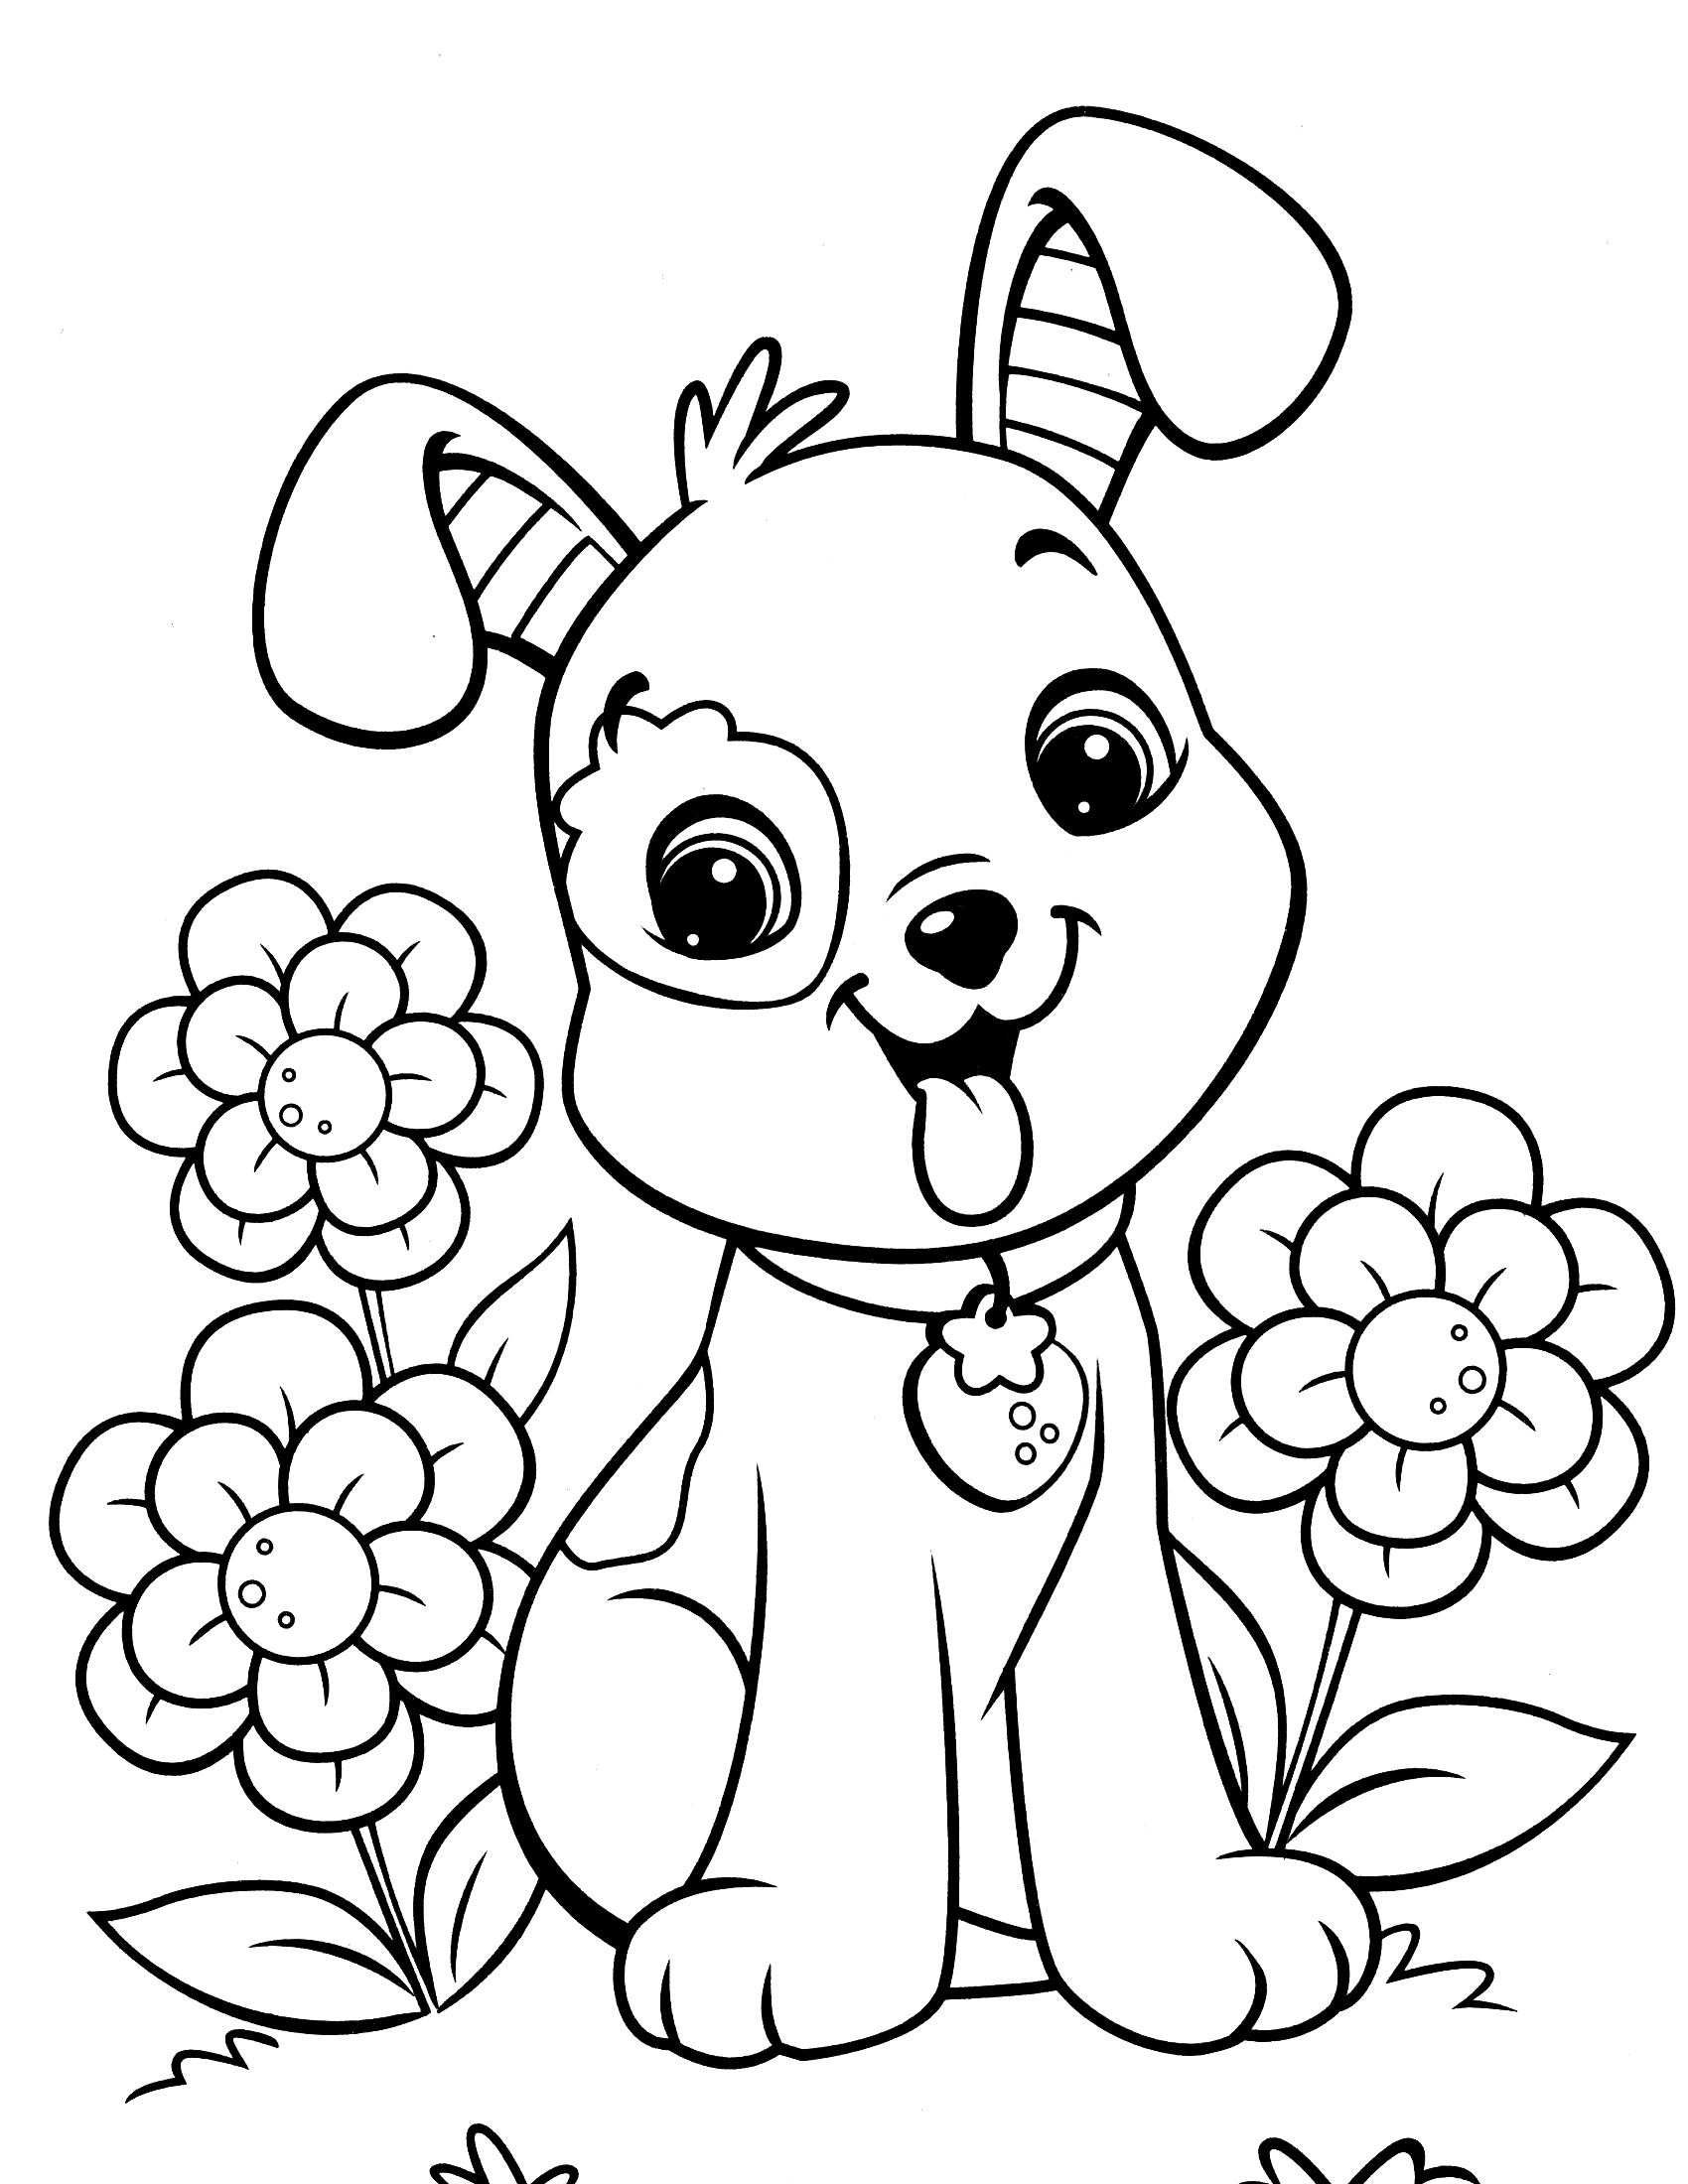 printable cute puppy coloring pages cute puppy cartoon images clipartsco puppy cute printable coloring pages